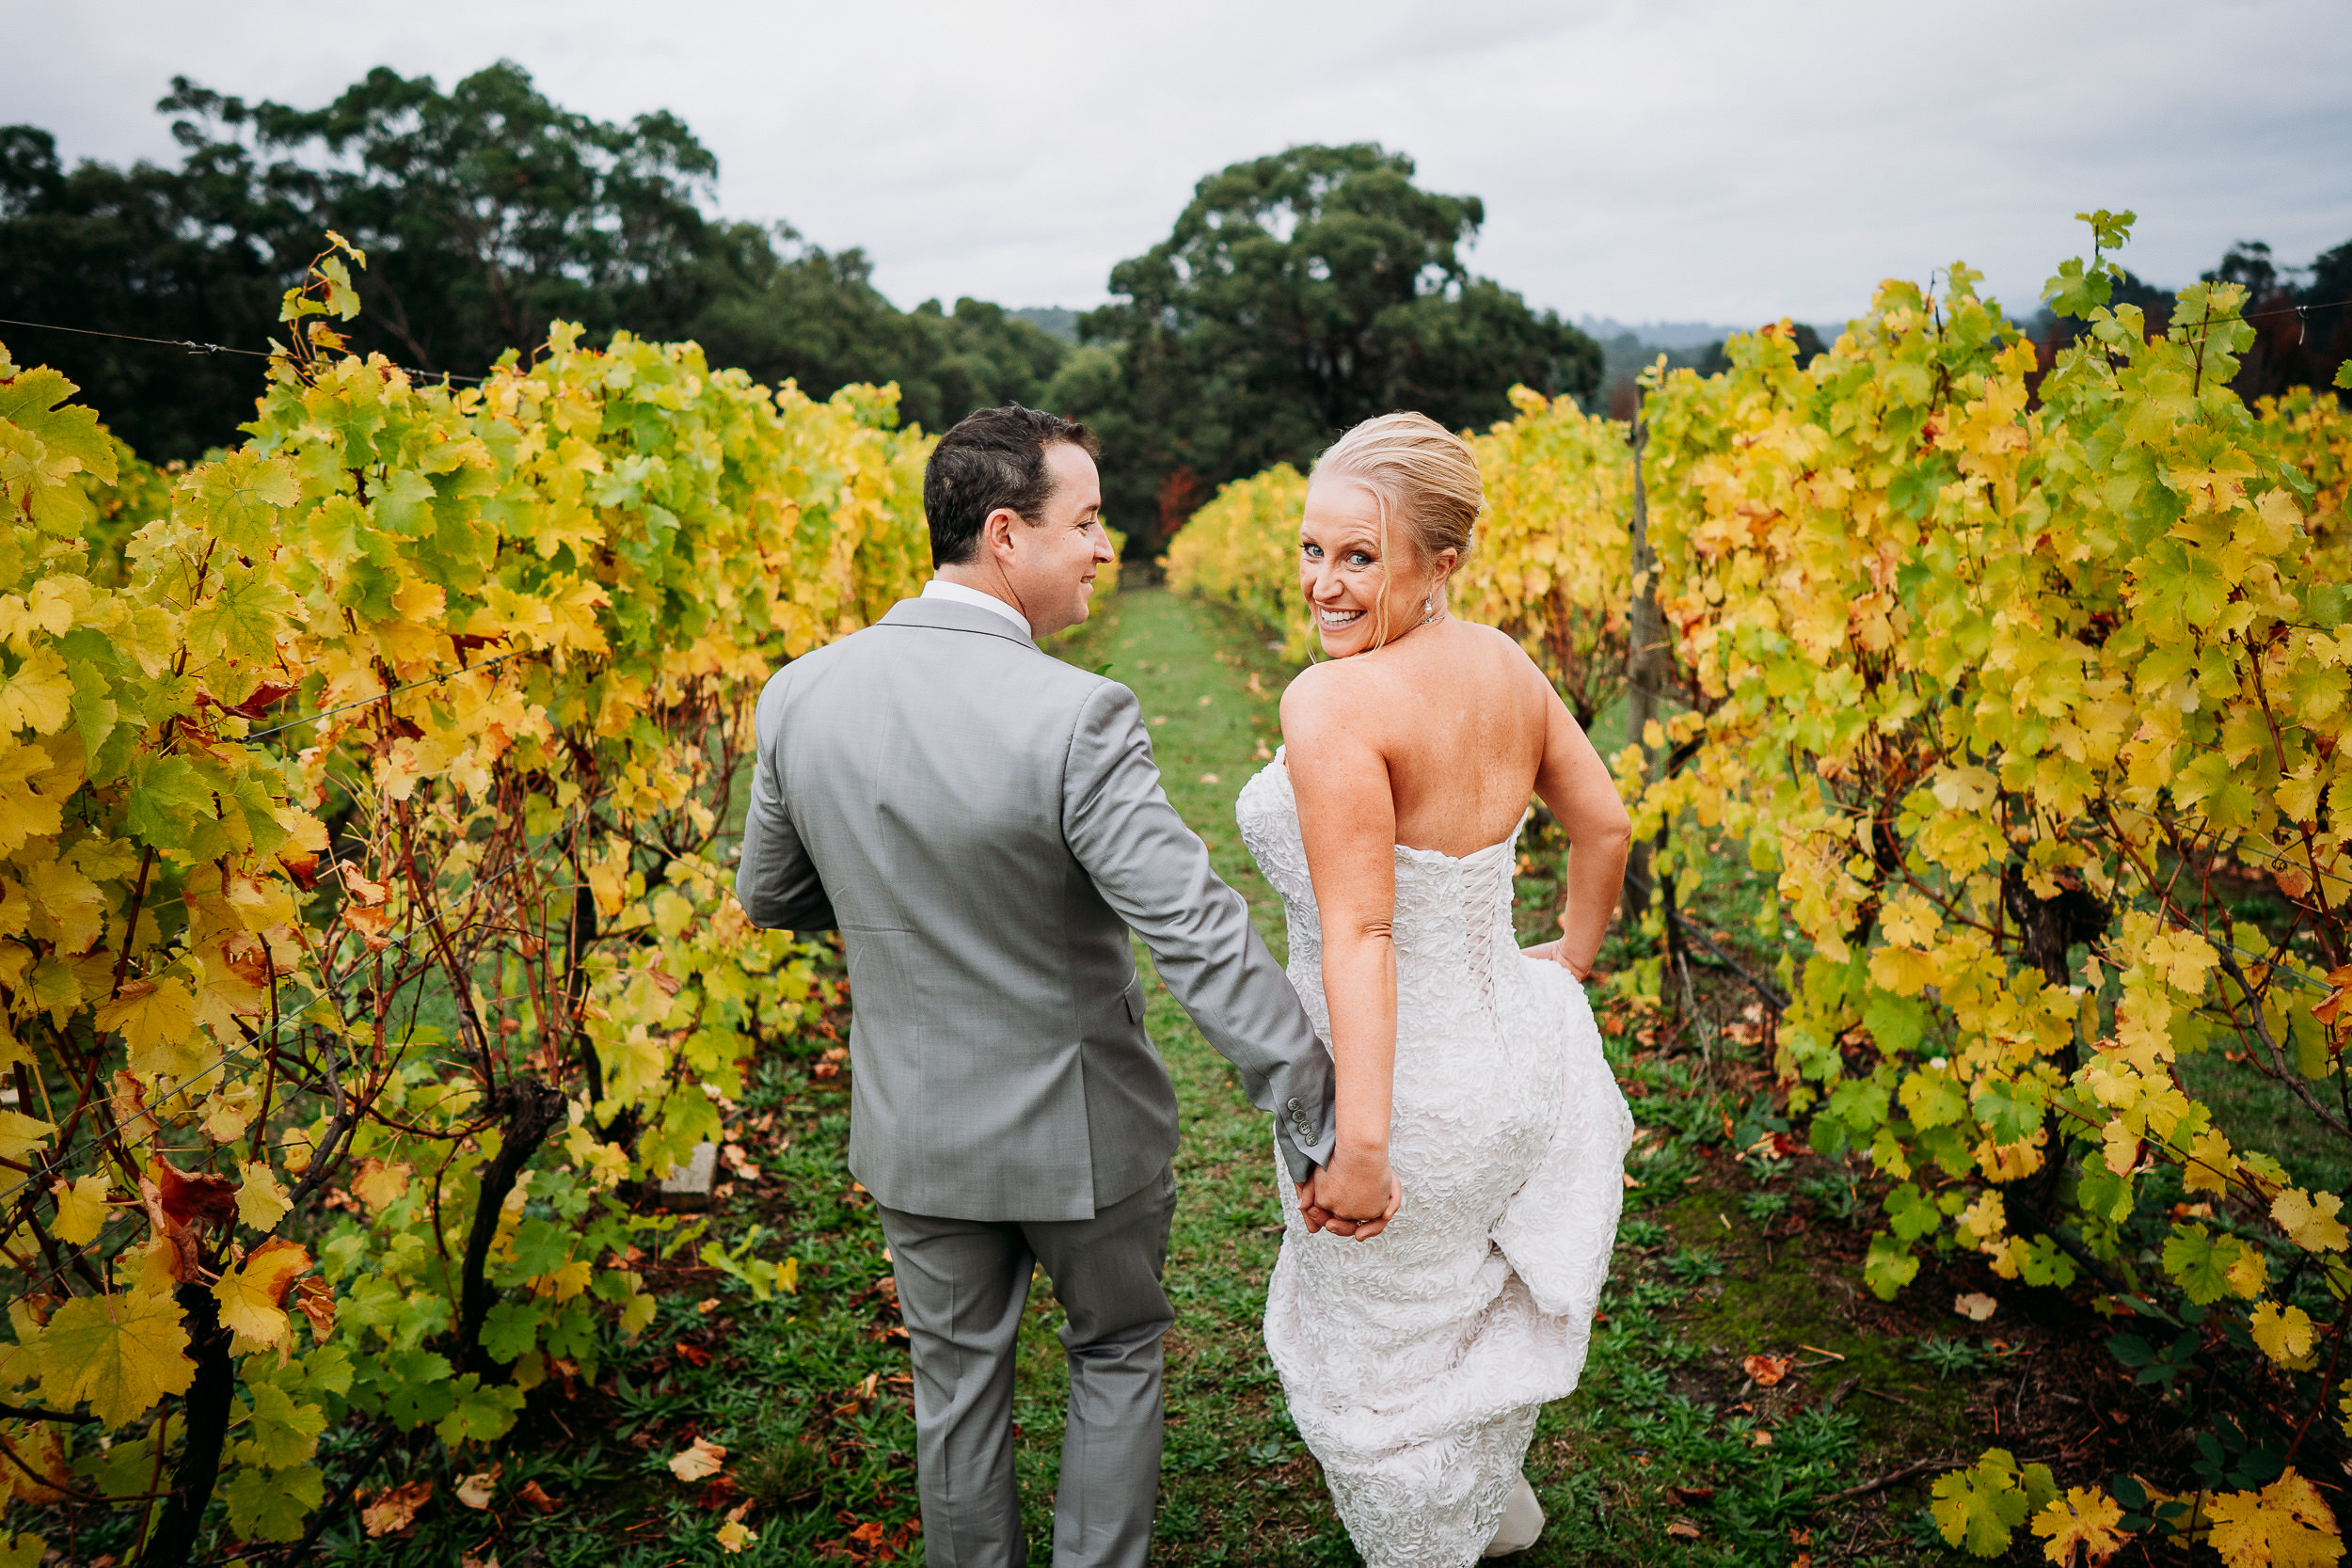 Yarra-Ranges-Estate-Wedding-1011.jpg